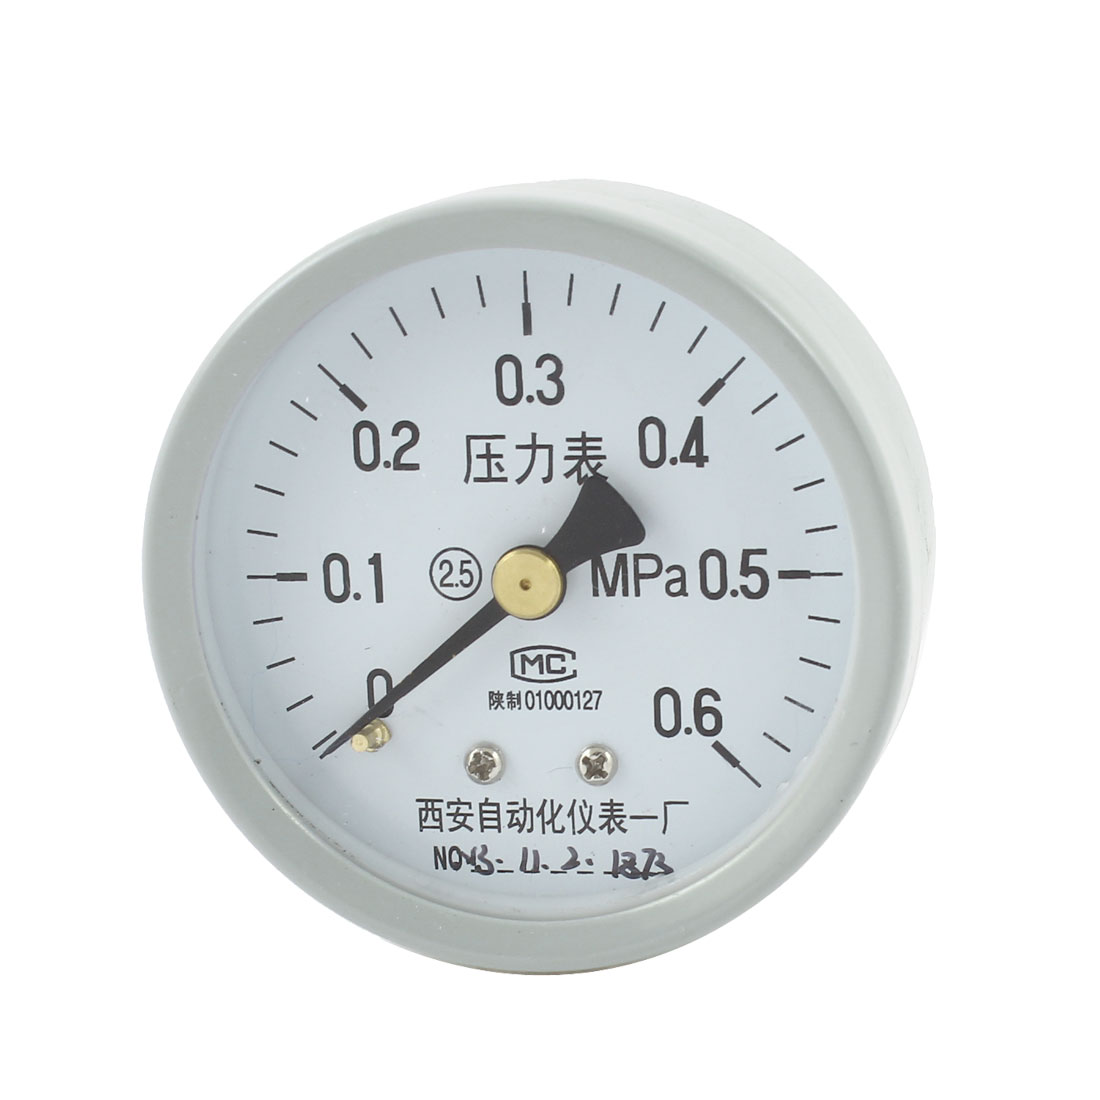 Light Gray 0-0.6MPa 1/4PT Male Thread Measuring Air Pressure Gauge 53mm Dial